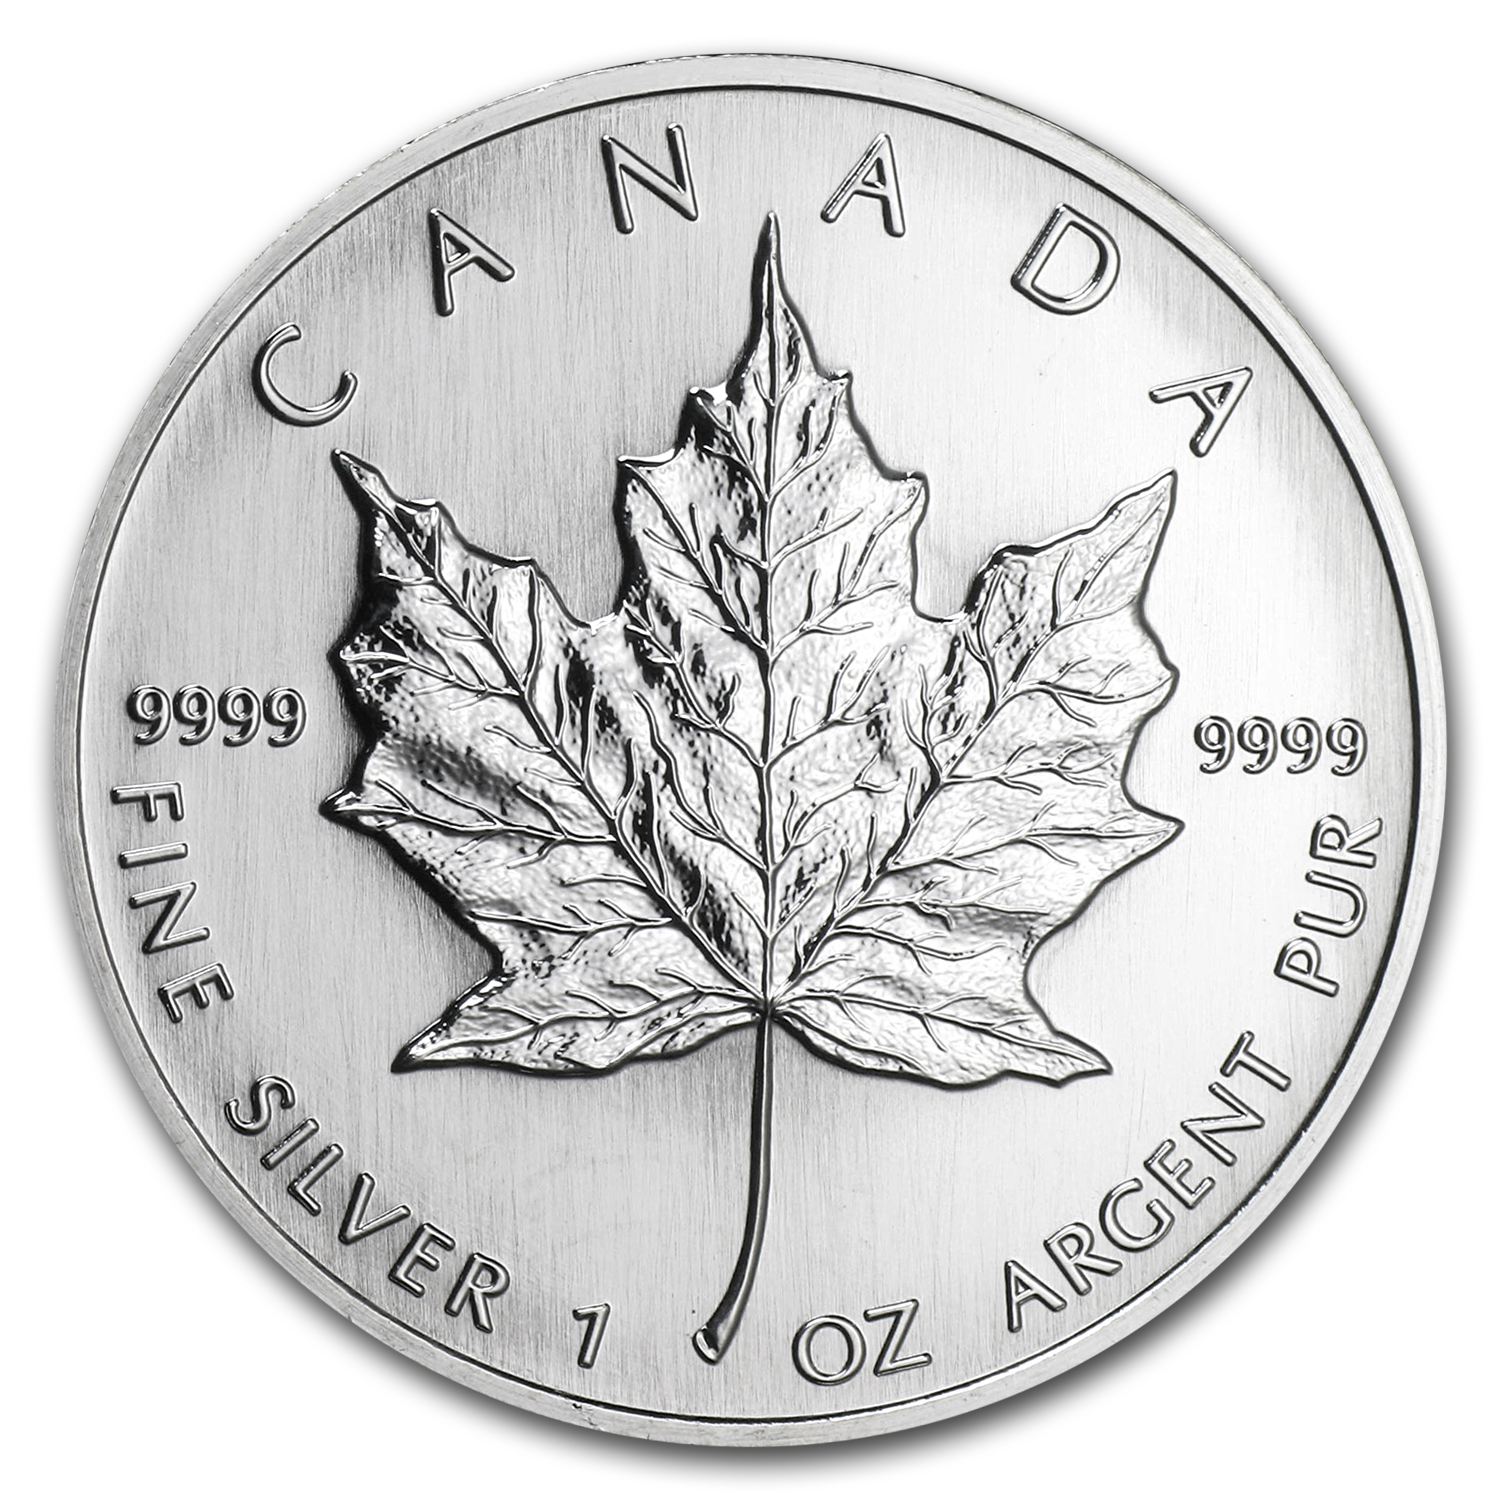 2001 1 oz Silver Canadian Maple Leaf (Autumn, Abrasions)